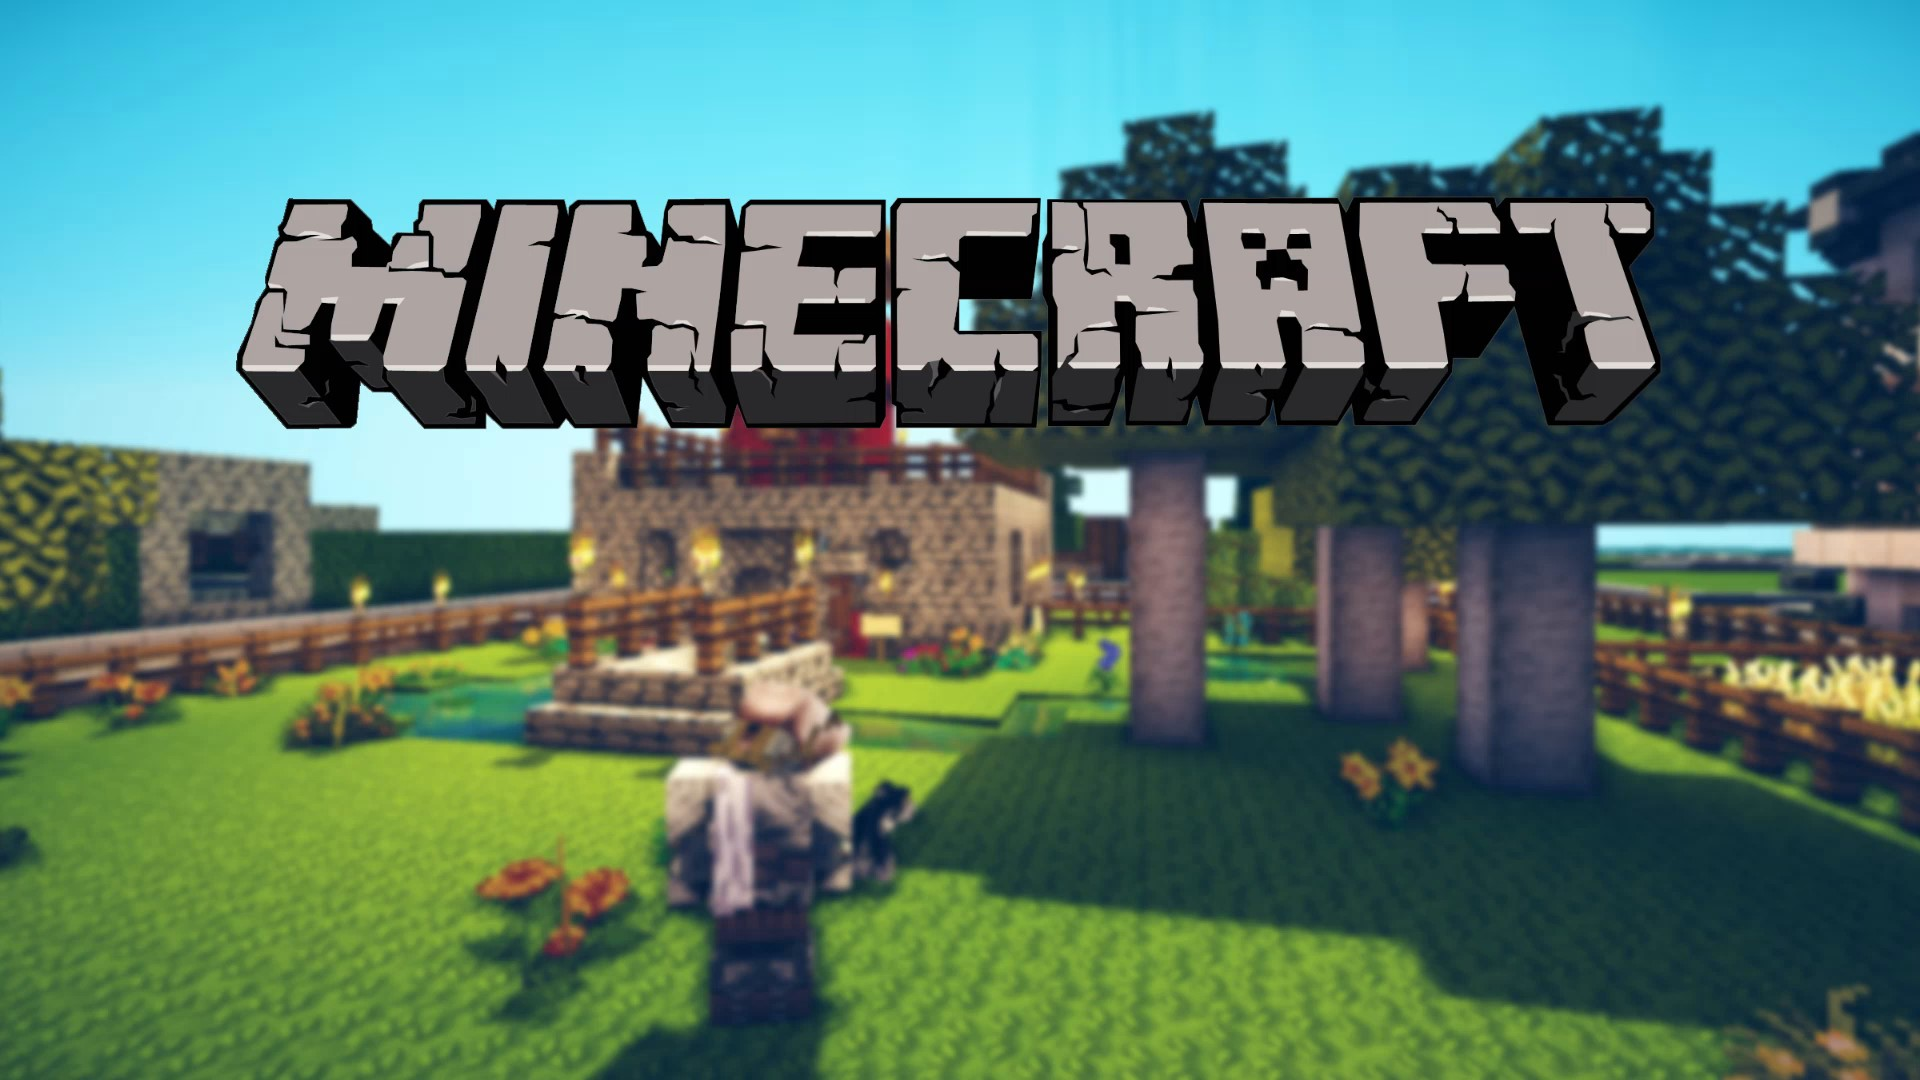 download minecraft 1.9 full version free for pc